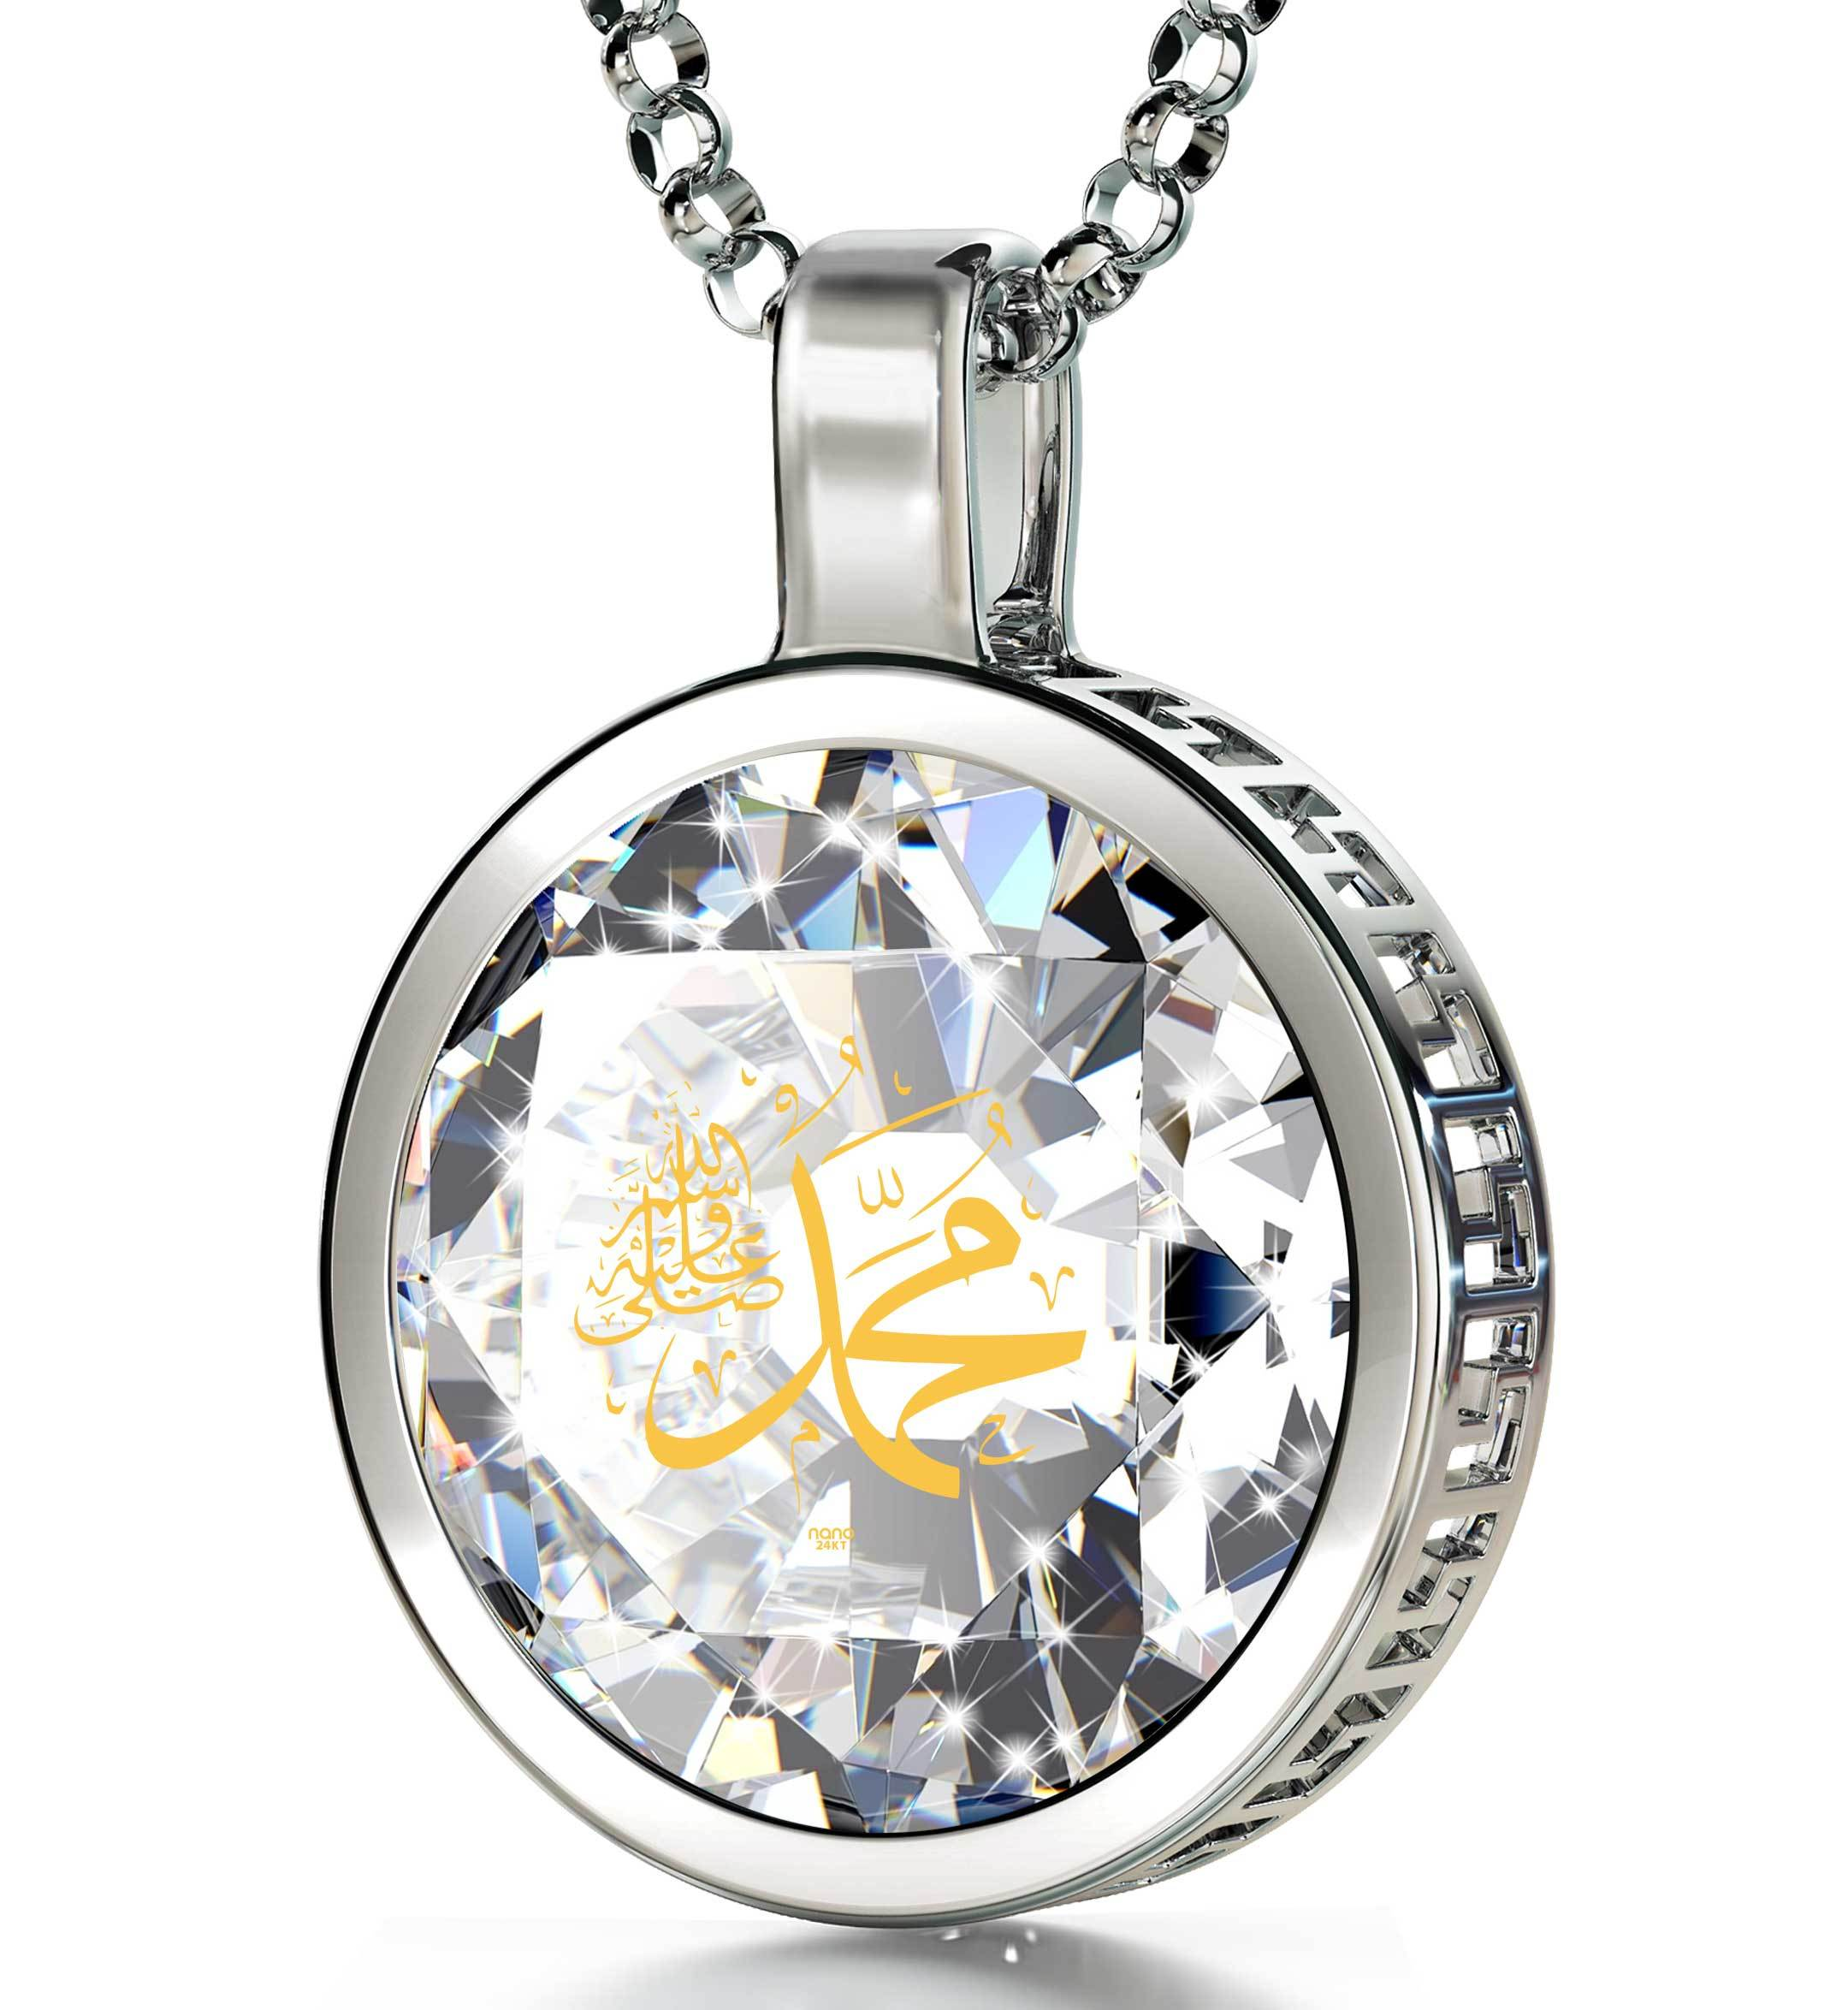 """Muhammad"" in 24k Imprint, Muslim Necklace for Men, Islamic Gifts, Meaningful Jewelry, Nano"